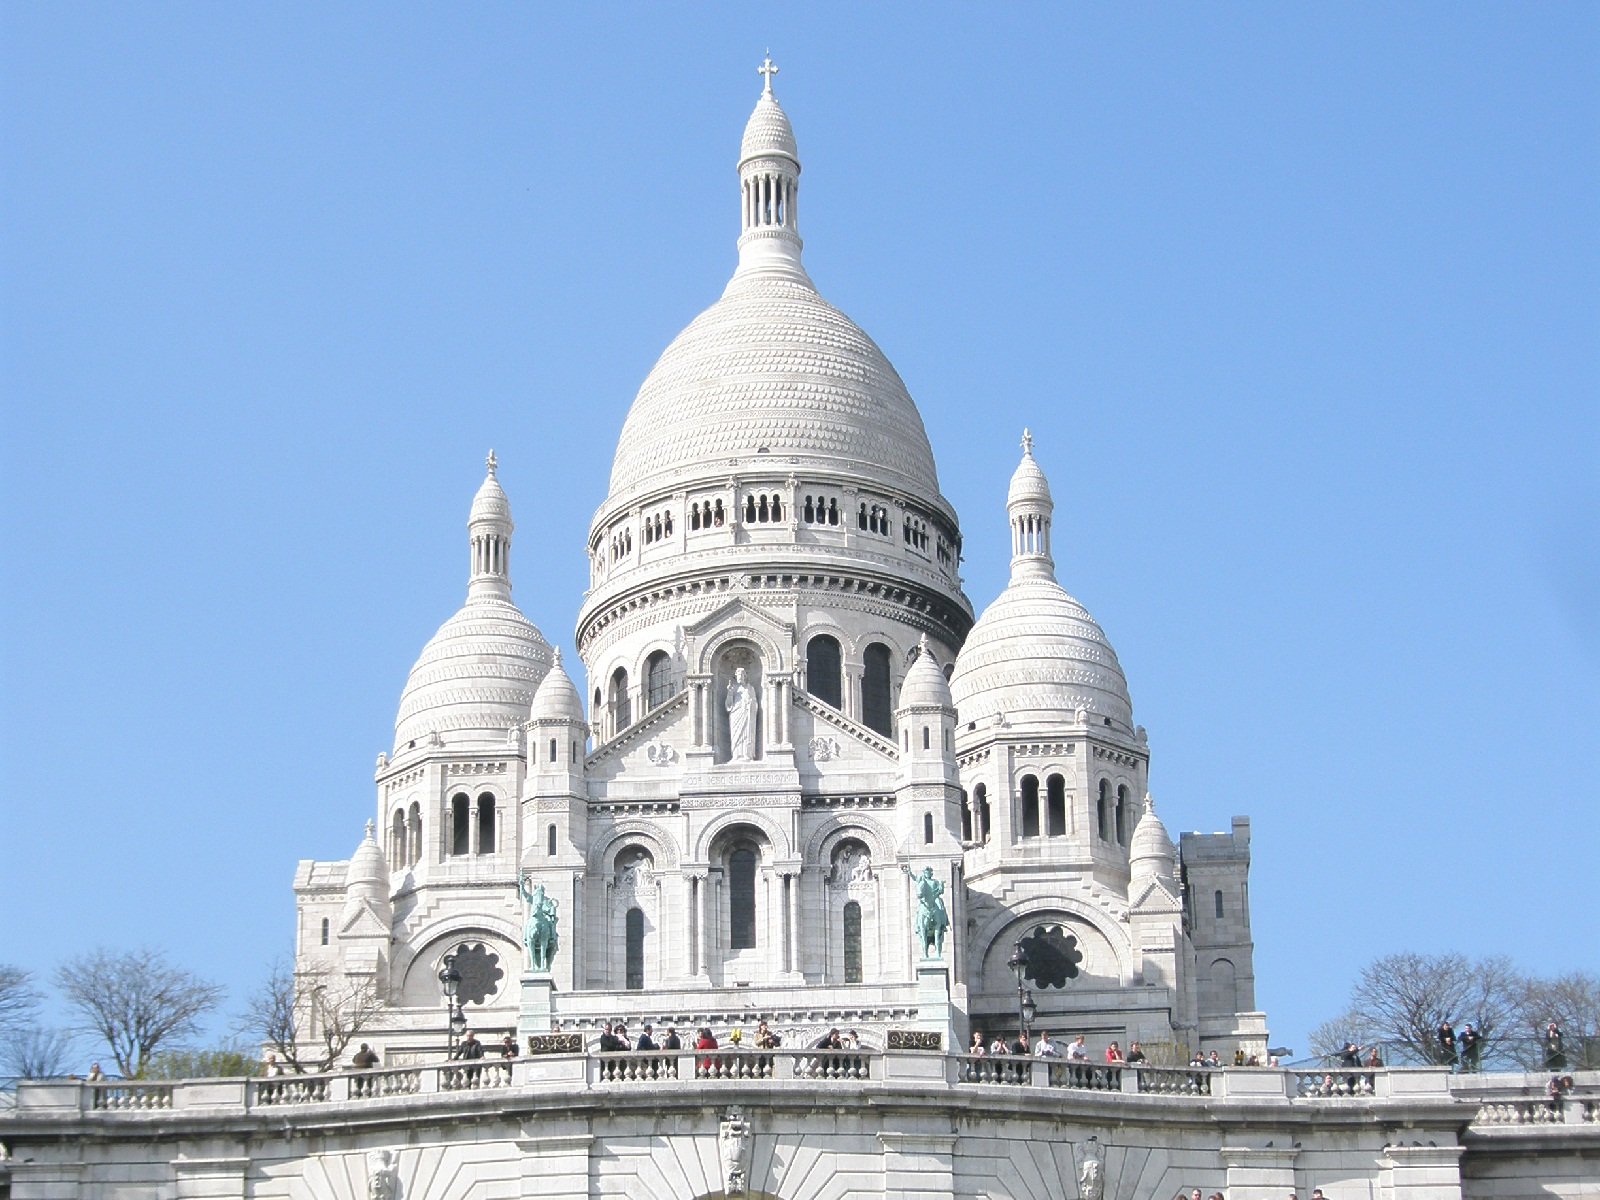 Paris Architecture, France, Sacre Coeur